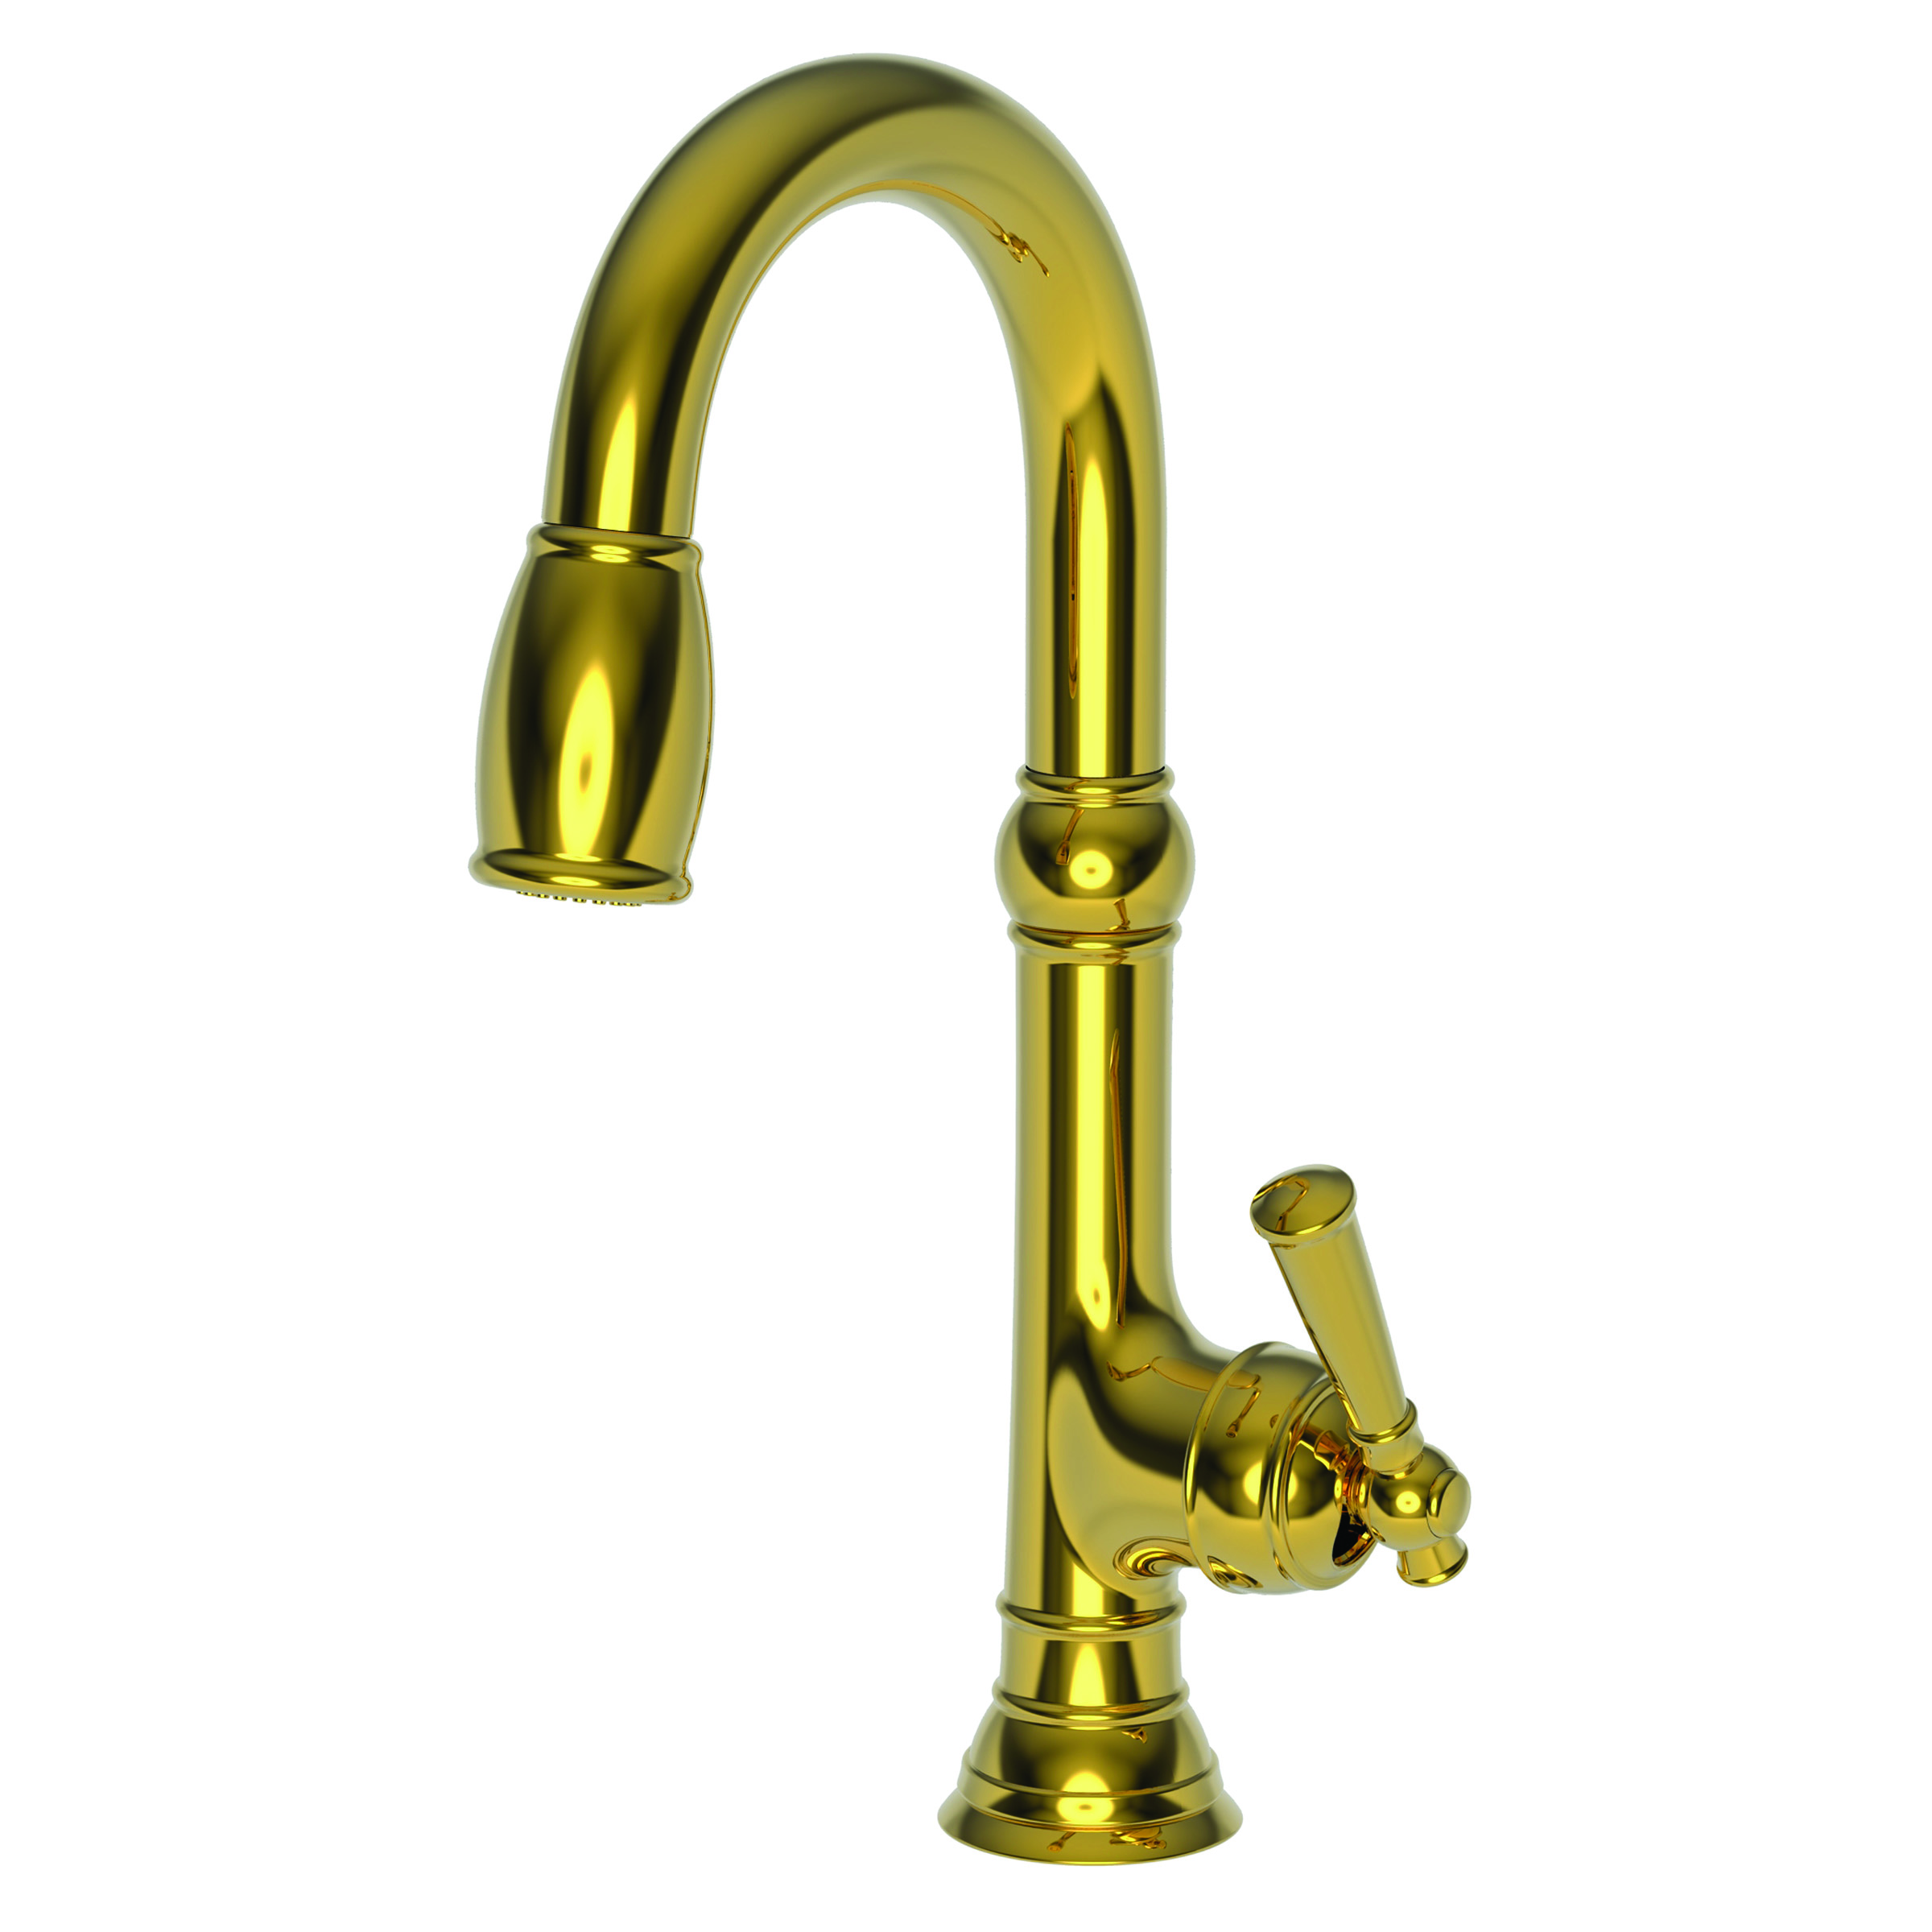 Newport Brass Bathroom Faucets Brand Newport Brass Widespread Lavatory Faucet New 50 Bathroom